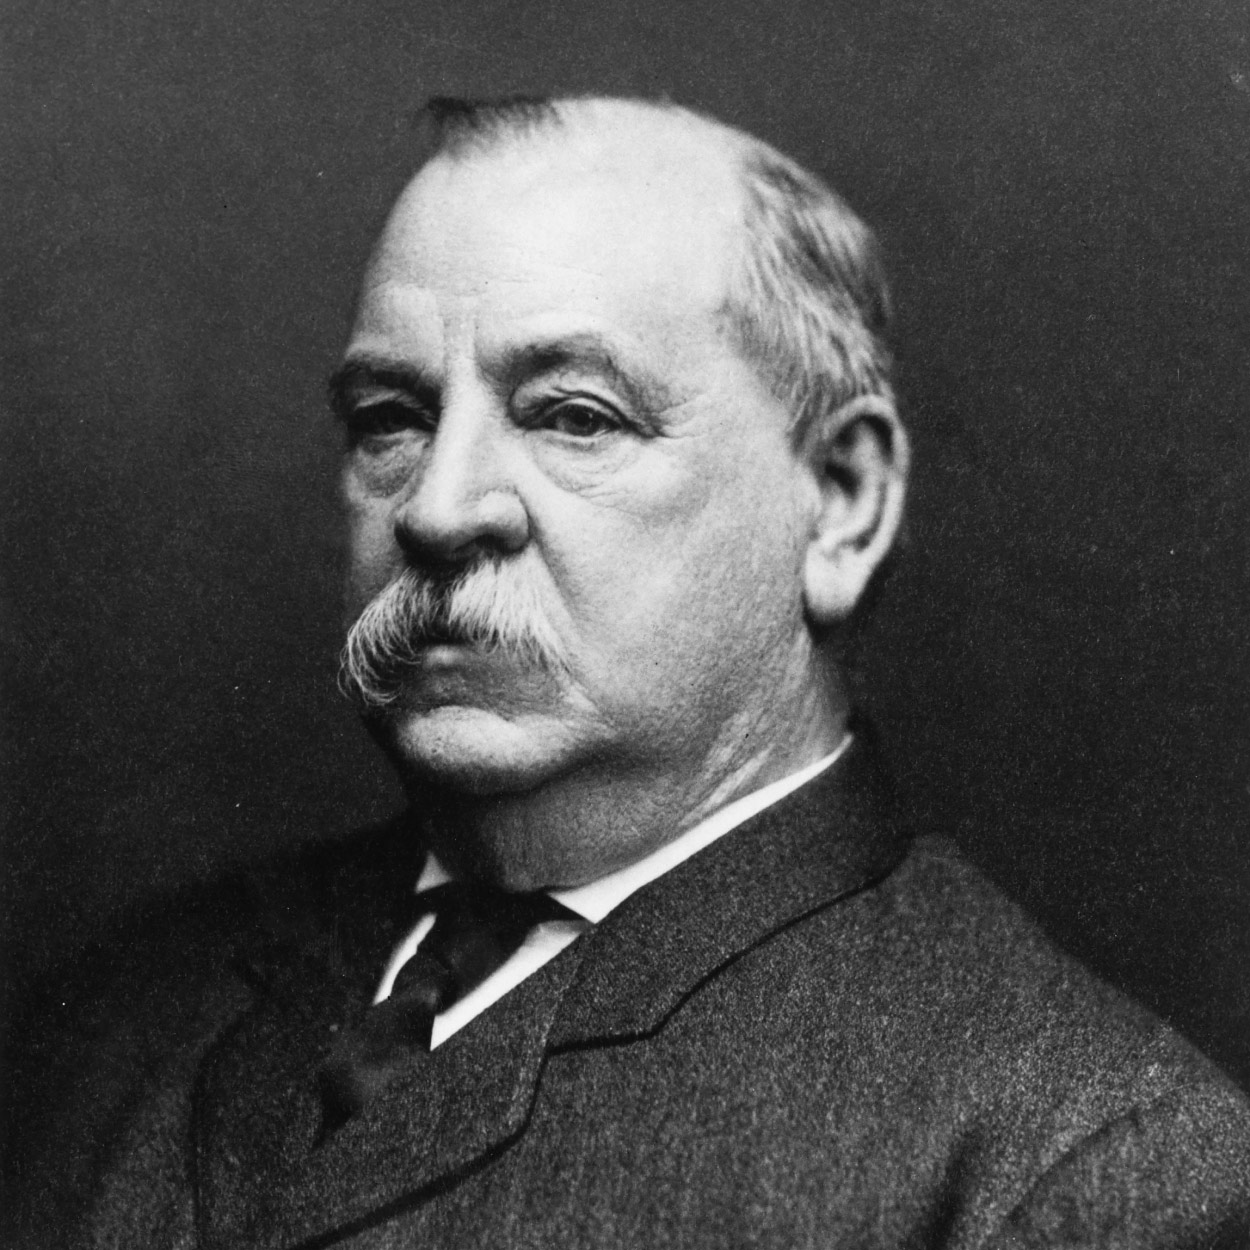 Portrait of Grover Cleveland the 22nd and 24th President of the United States